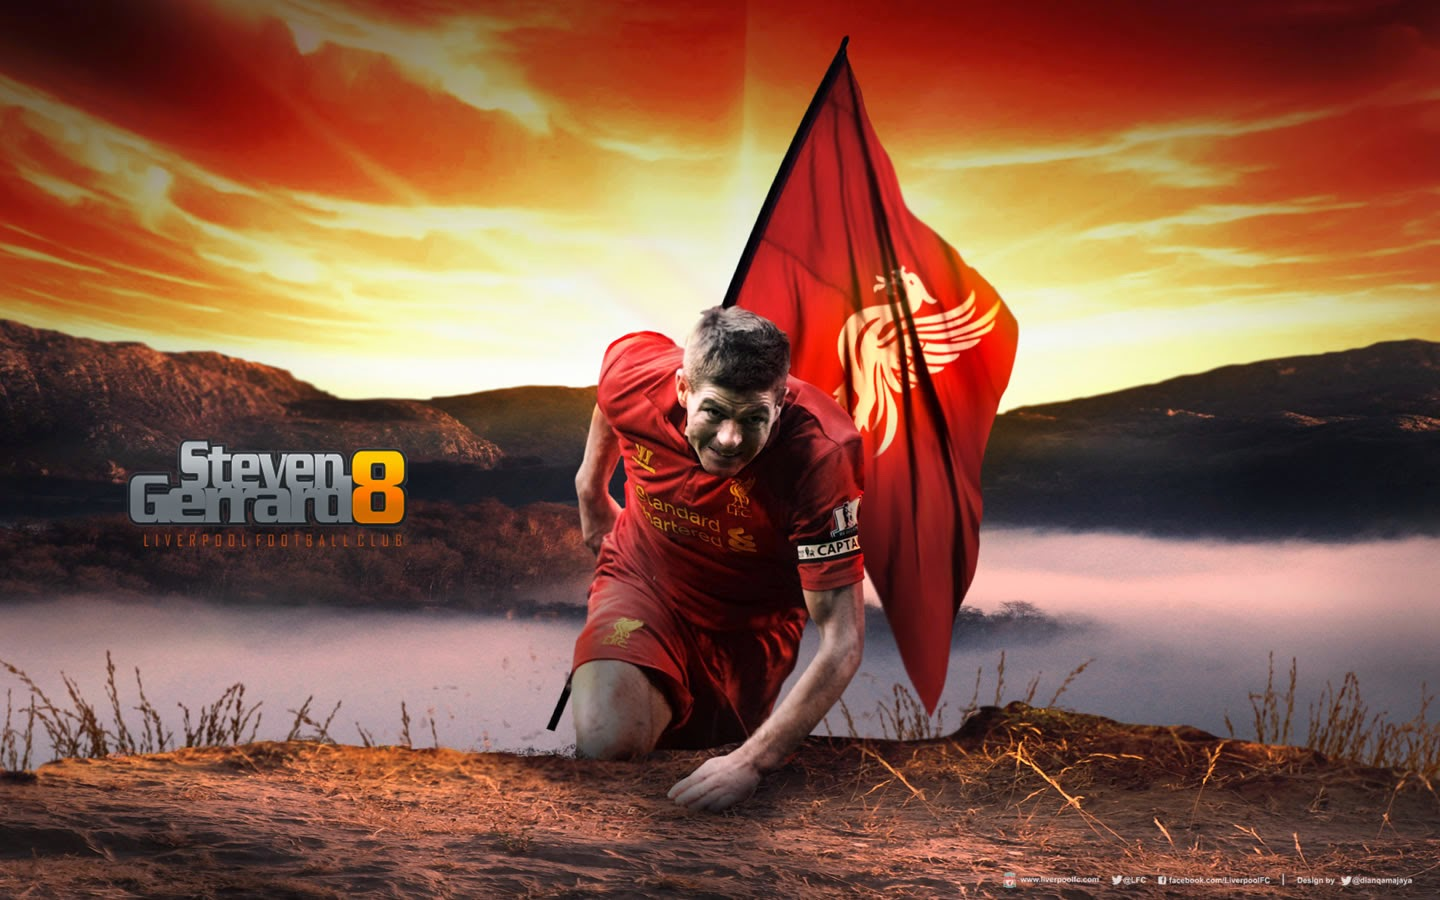 Wallpaper Steven Gerrard 8